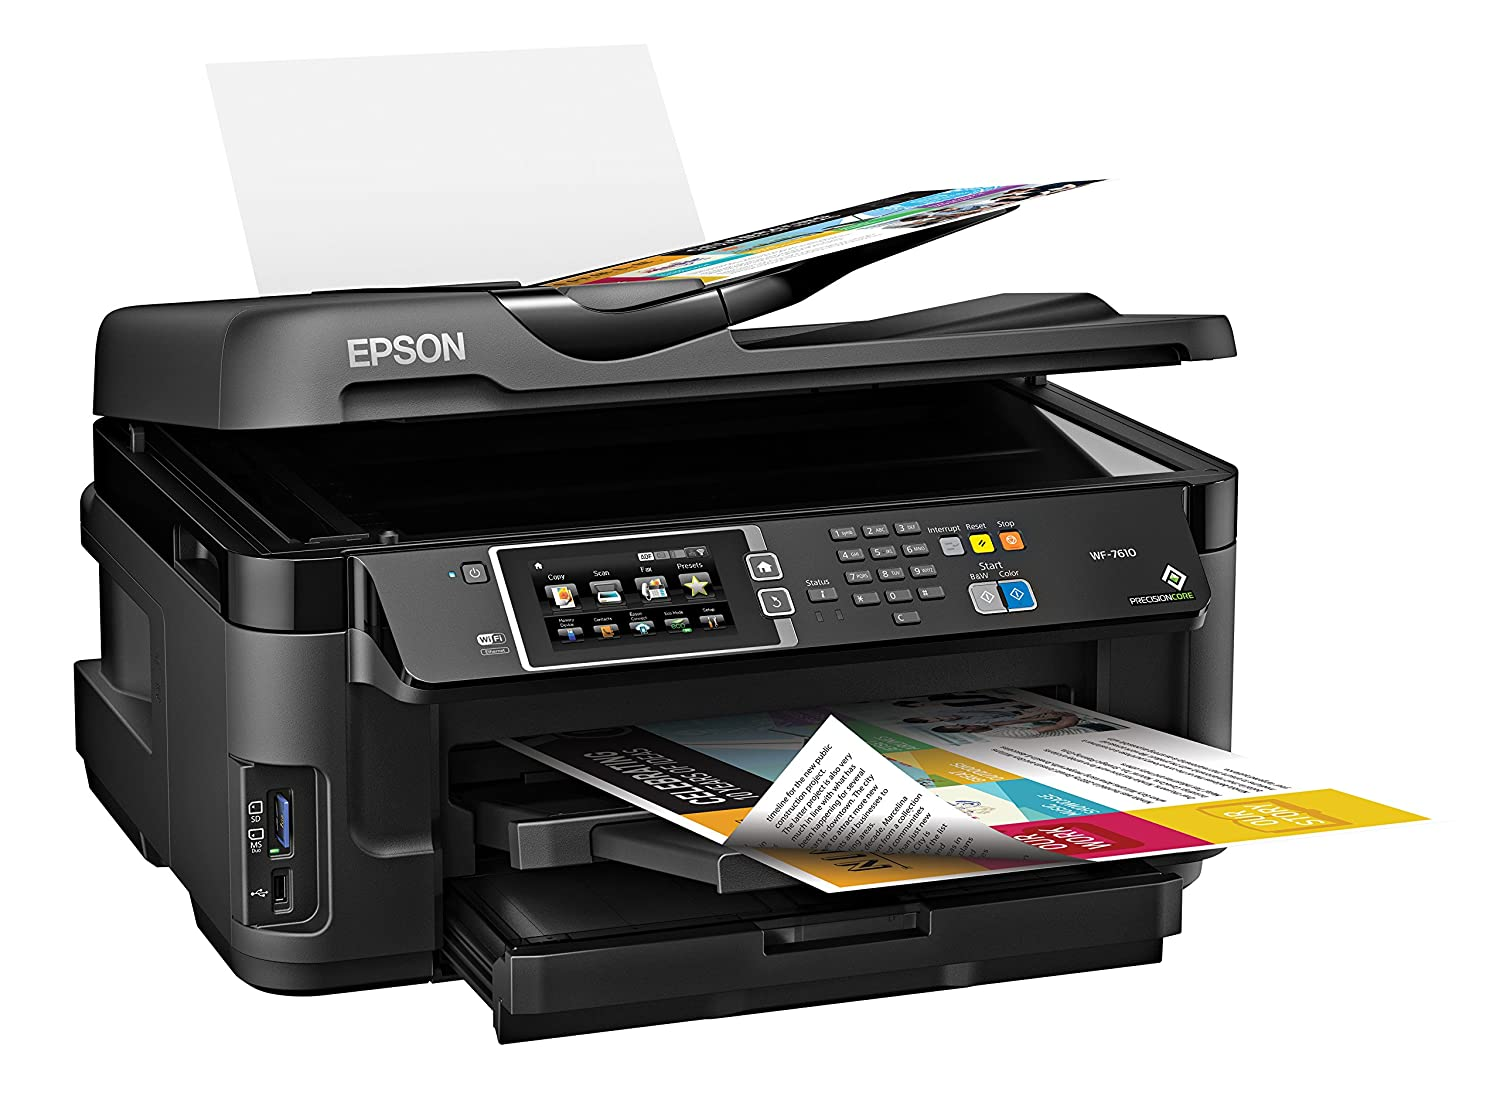 Epson Wireless Color All In One Inkjet Printer Workforce Wf 7610 Tinta Pigment Diamond Ink Best Photo Quality Computers Accessories